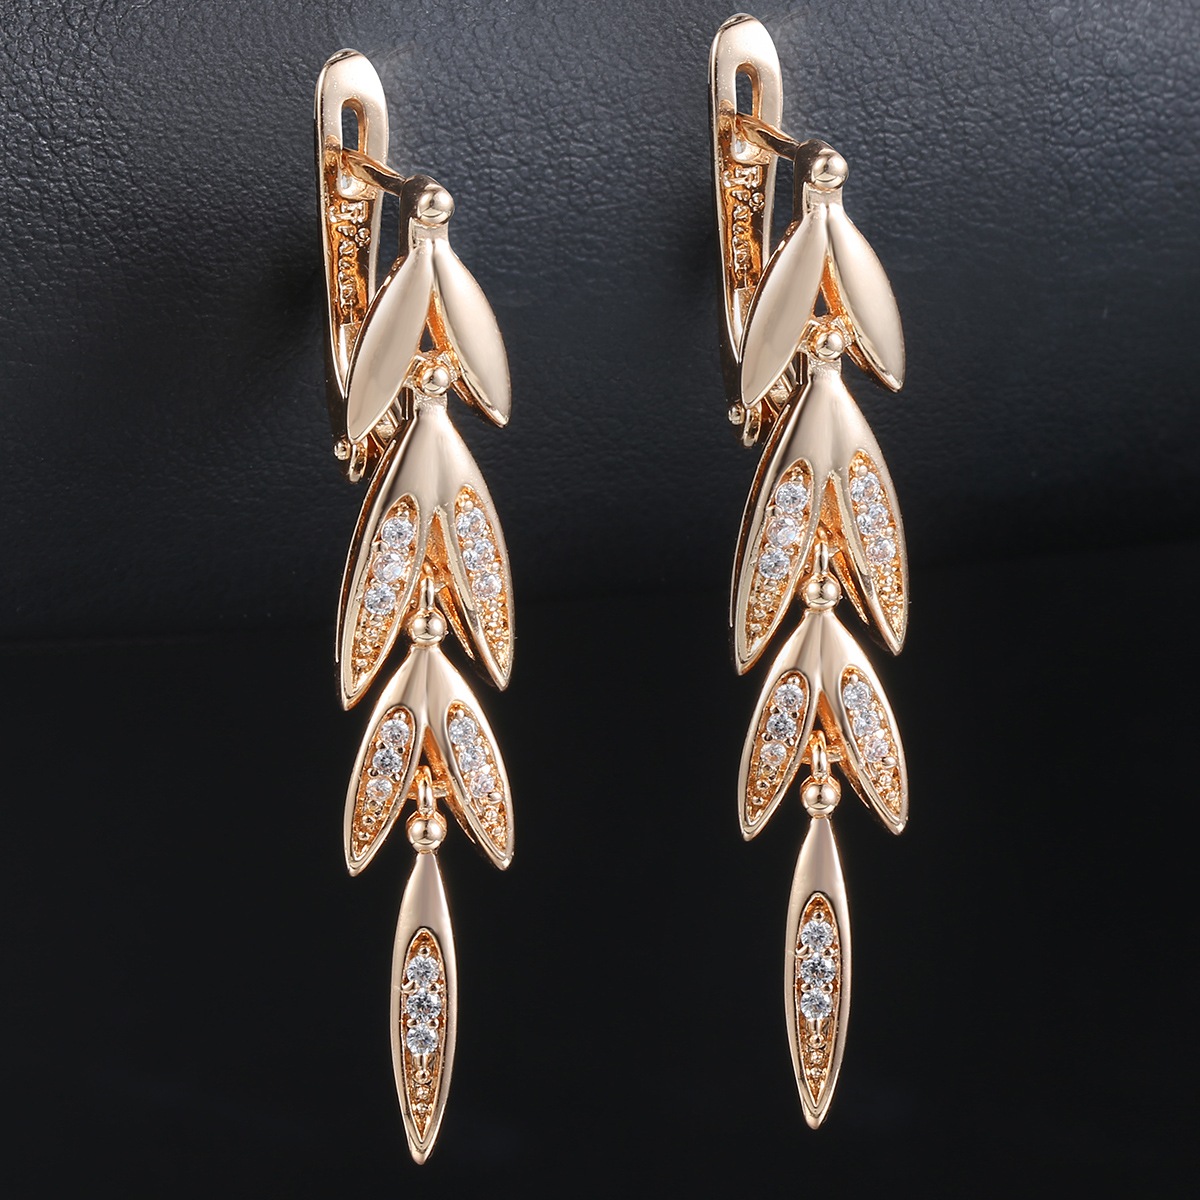 Womens Dangling Earrings Long Leaf Rose Gold Filled Snap Closure Paved Clear CZ Cubic Zirconia Earrings Jewelry Gift GE88A